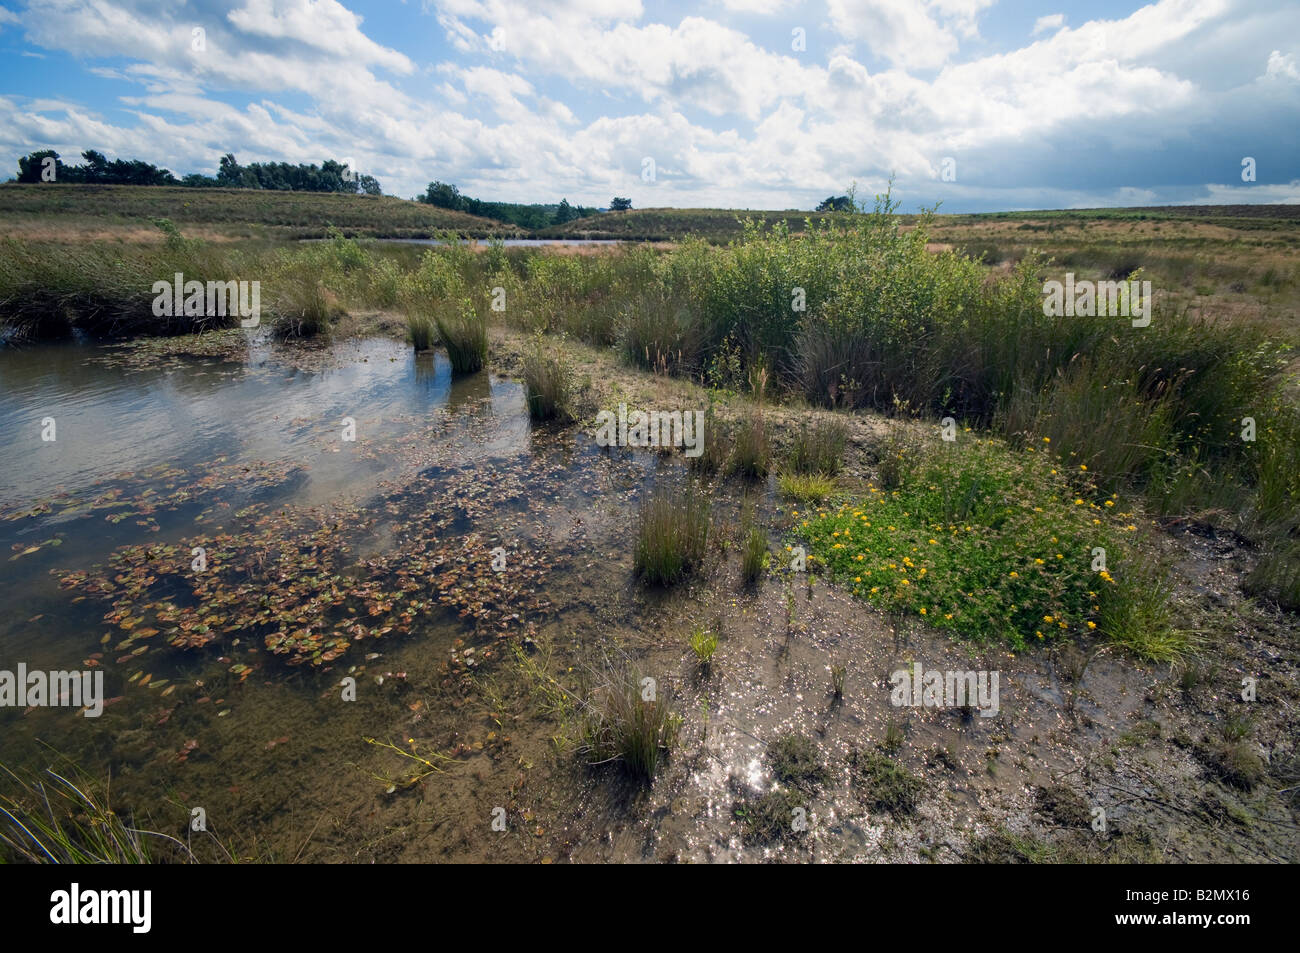 Returning vegetation and new life  on a drained reservoir - Stock Image